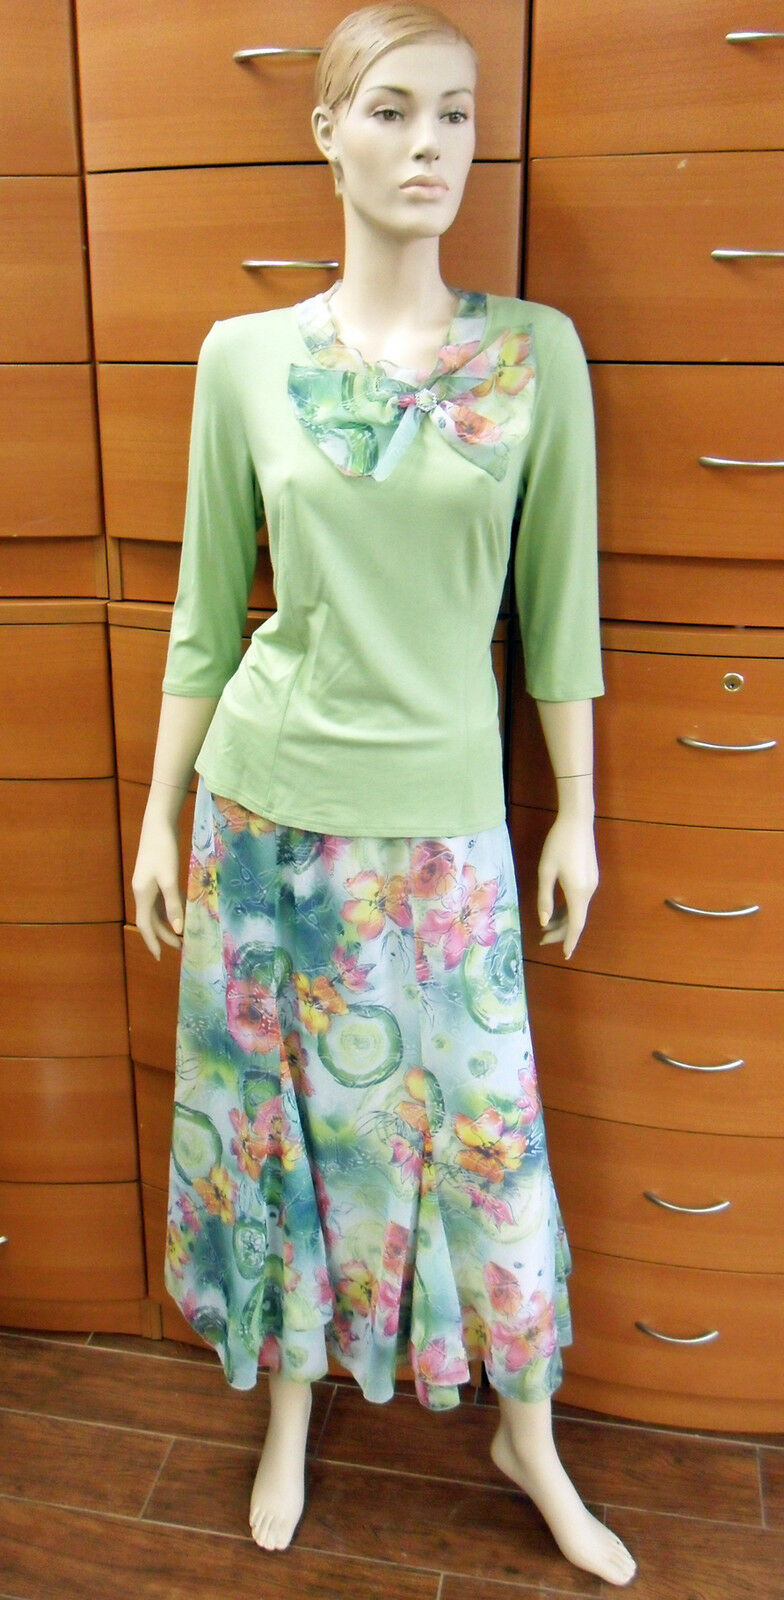 PARTY SKIRT SET Light Green A-line Midi Floral Skirt Set 3 4 Sleeve Blouse